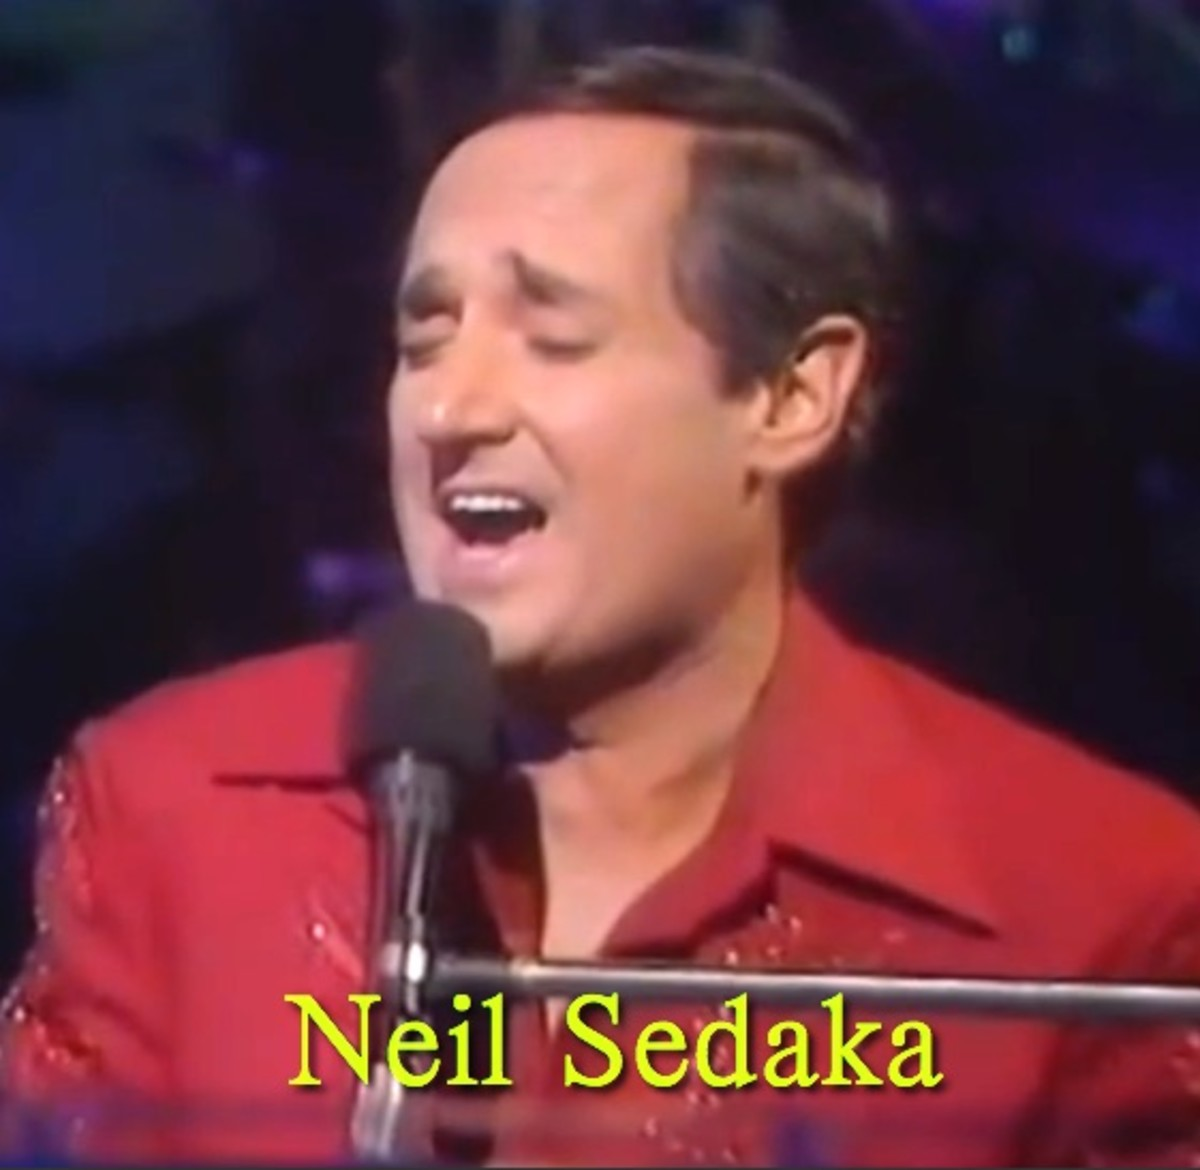 Neil Sedaka: His Music from Carole King Serenade to Children's Songs